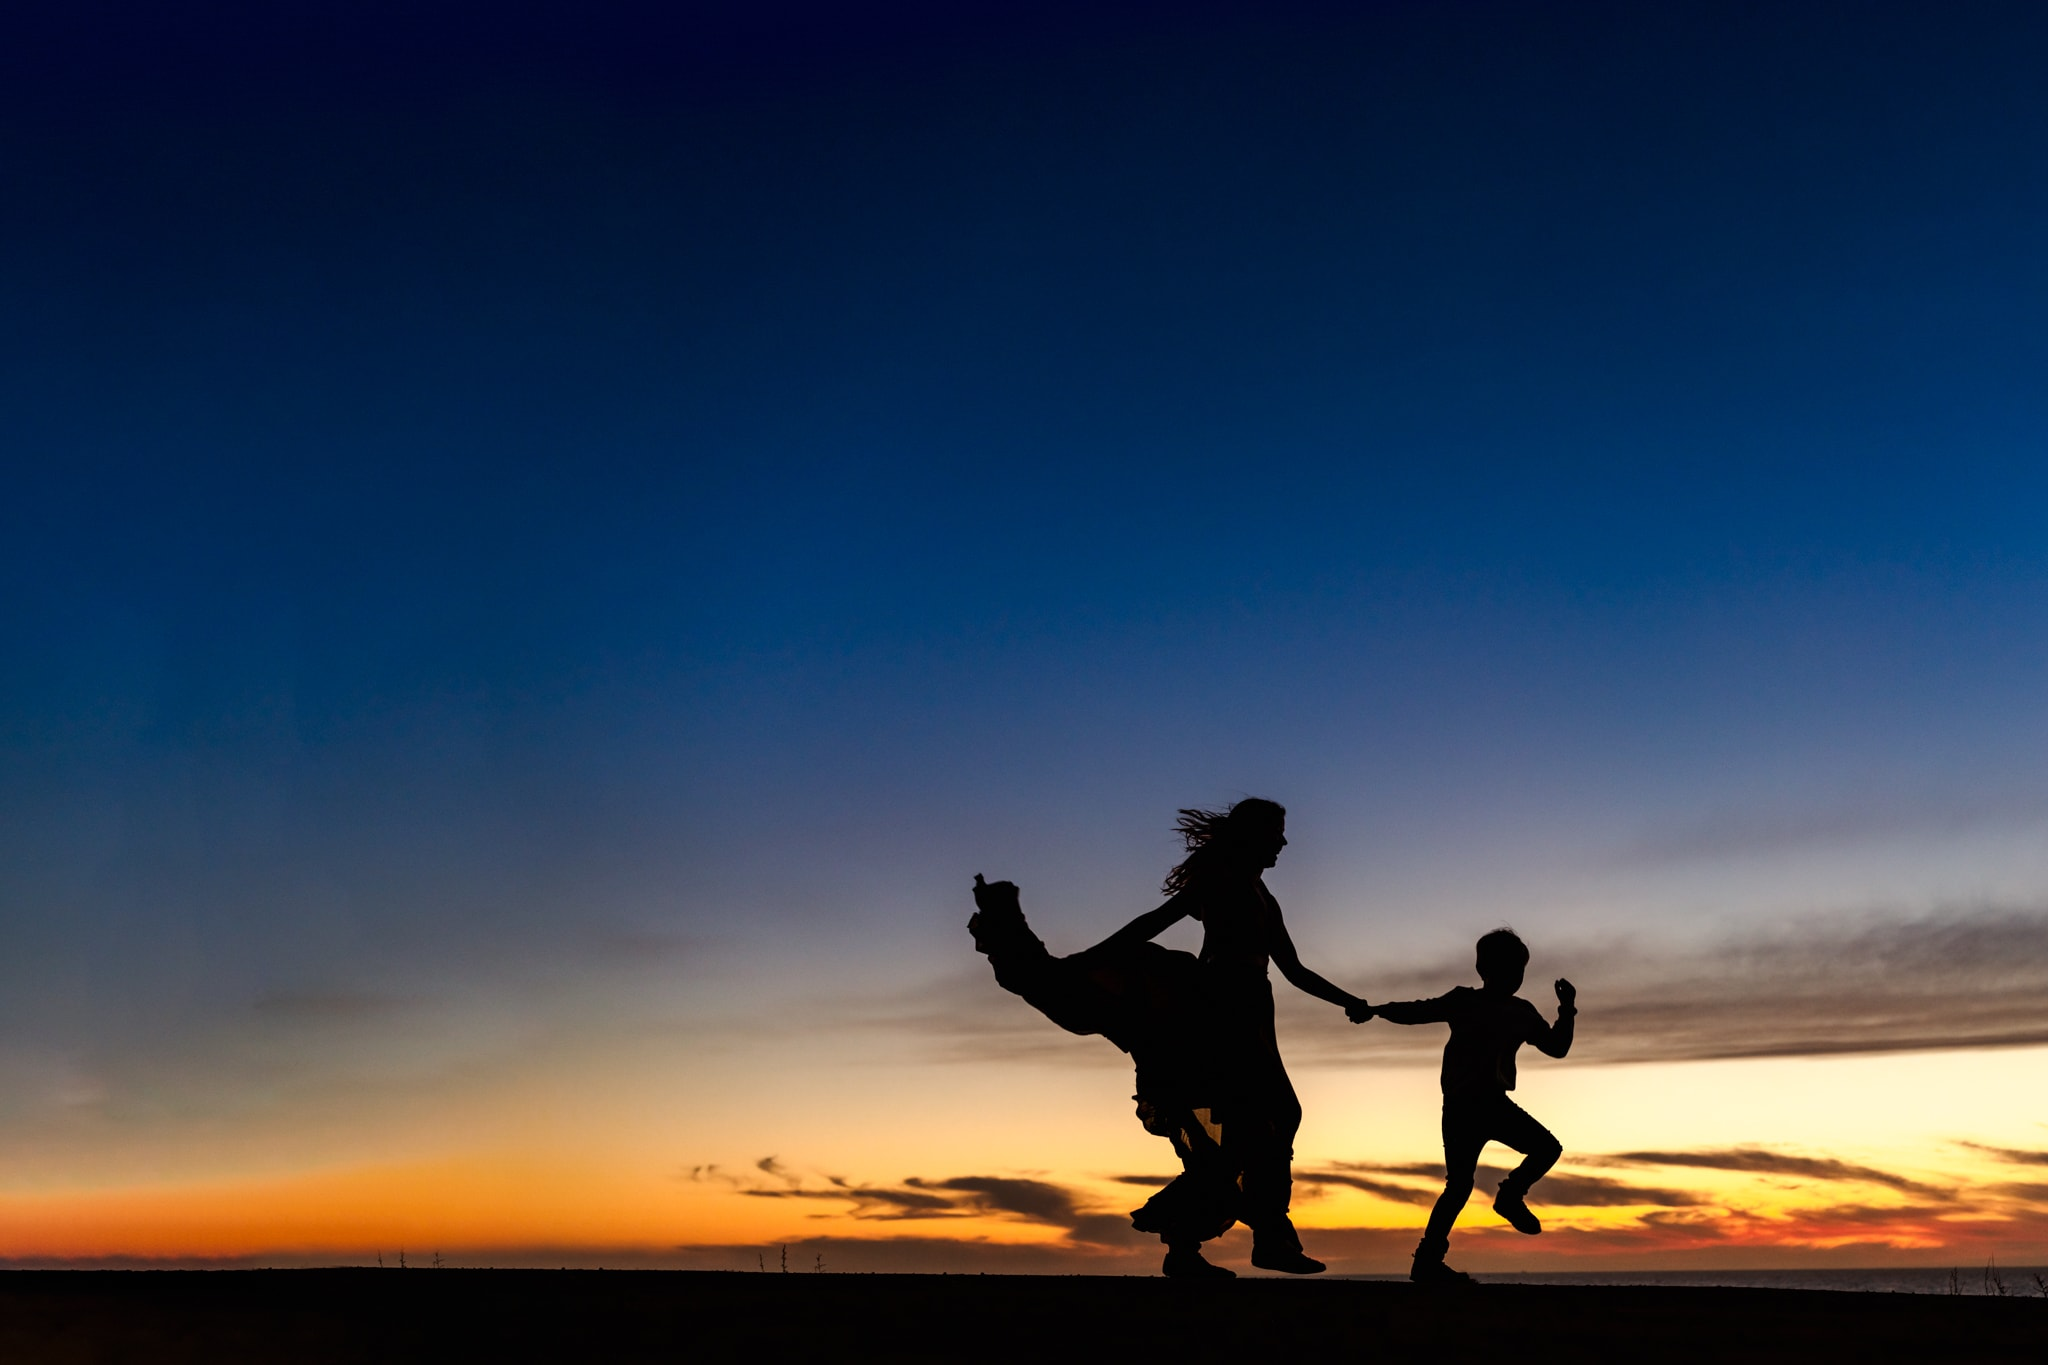 Mother and son silhouettes against sunset sky at Sunset Cliffs, San Diego